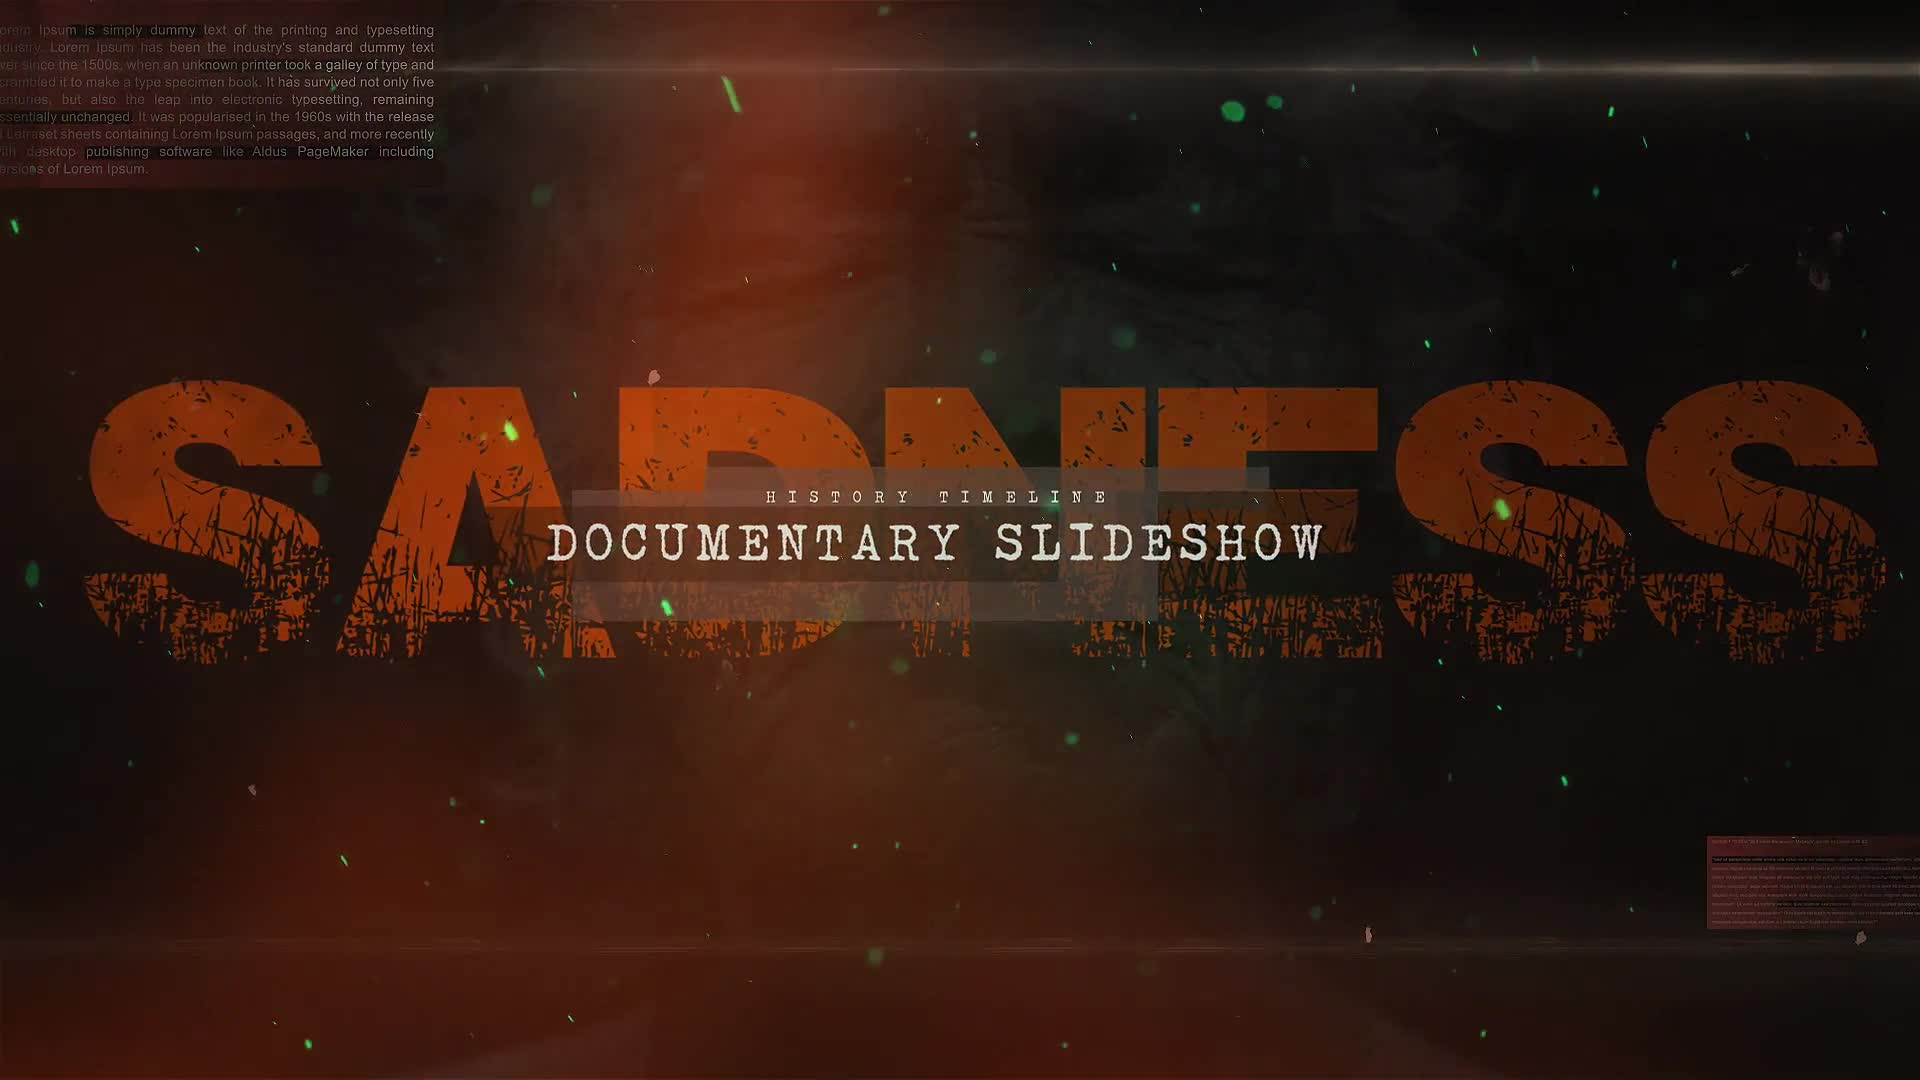 Sad Documentary Story Slideshow - Download Videohive 22024595